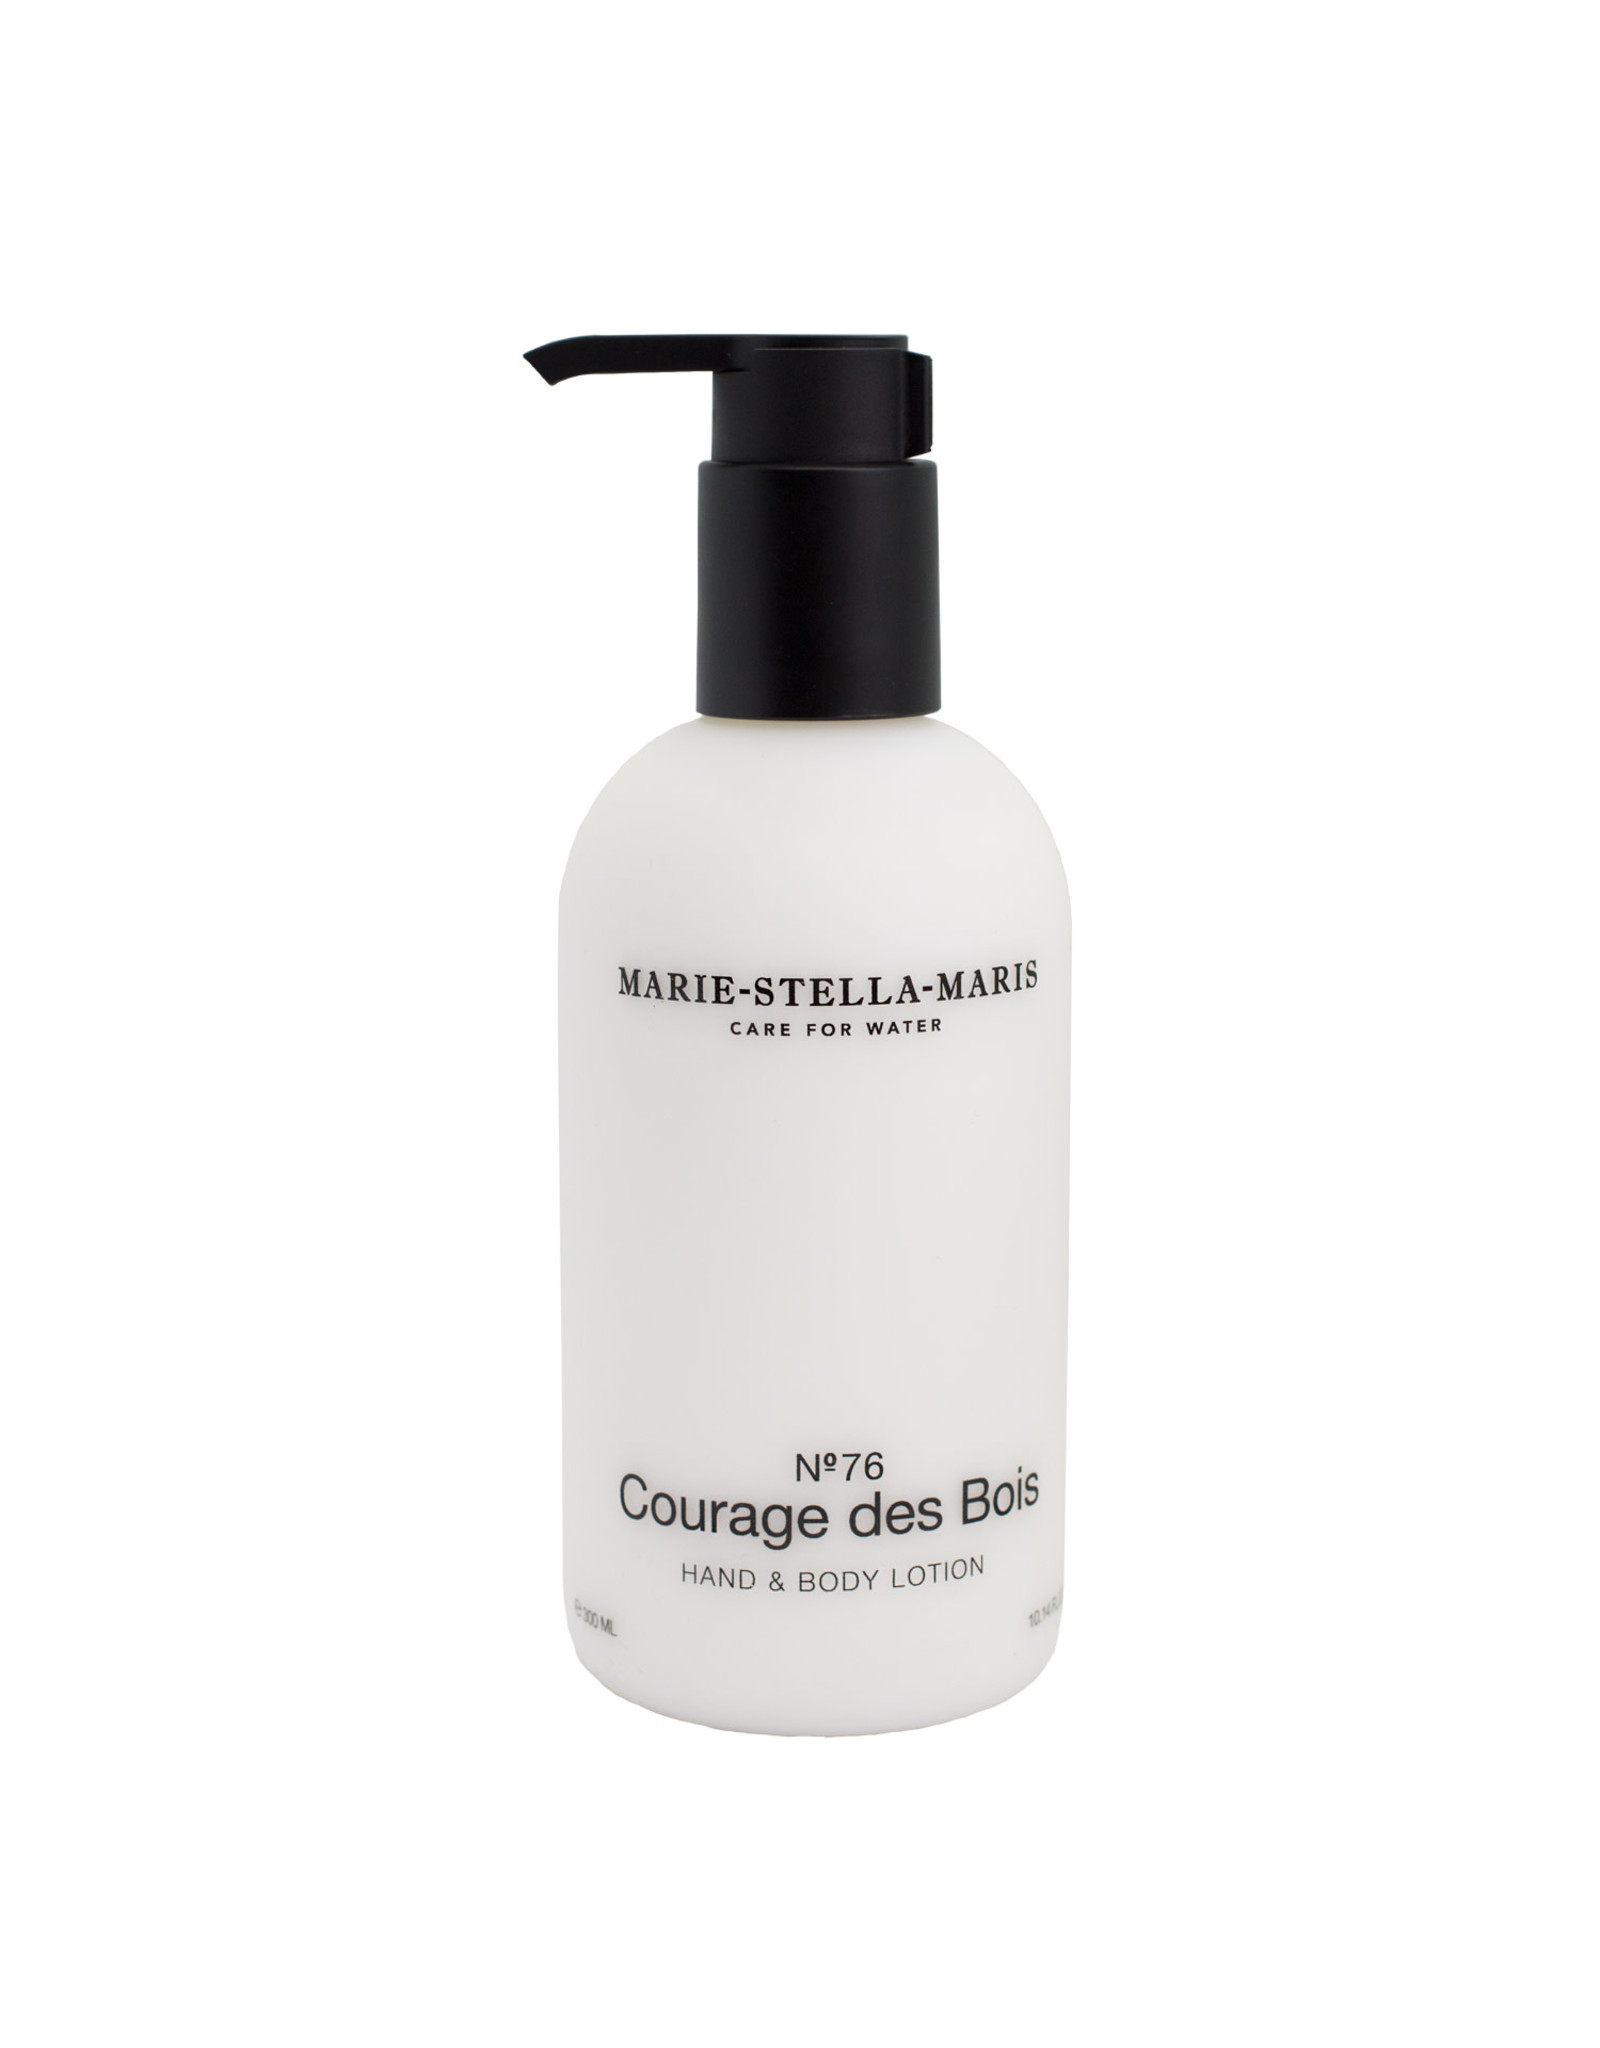 Marie-Stella-Maris Hand & Body Lotion Courage des Bois